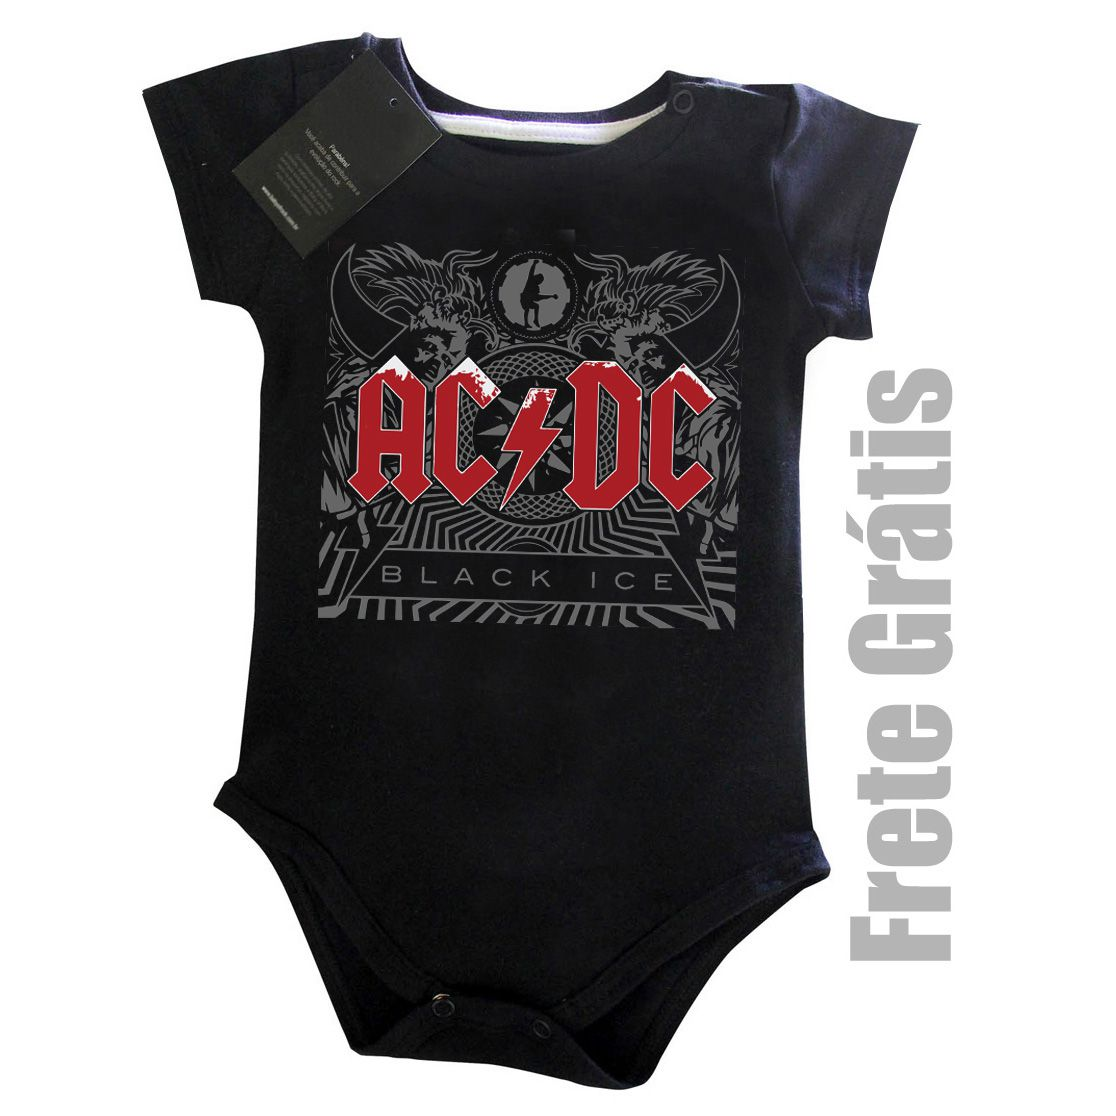 Body Bebe Rock Acdc - Black Ice   - Baby Monster S/A